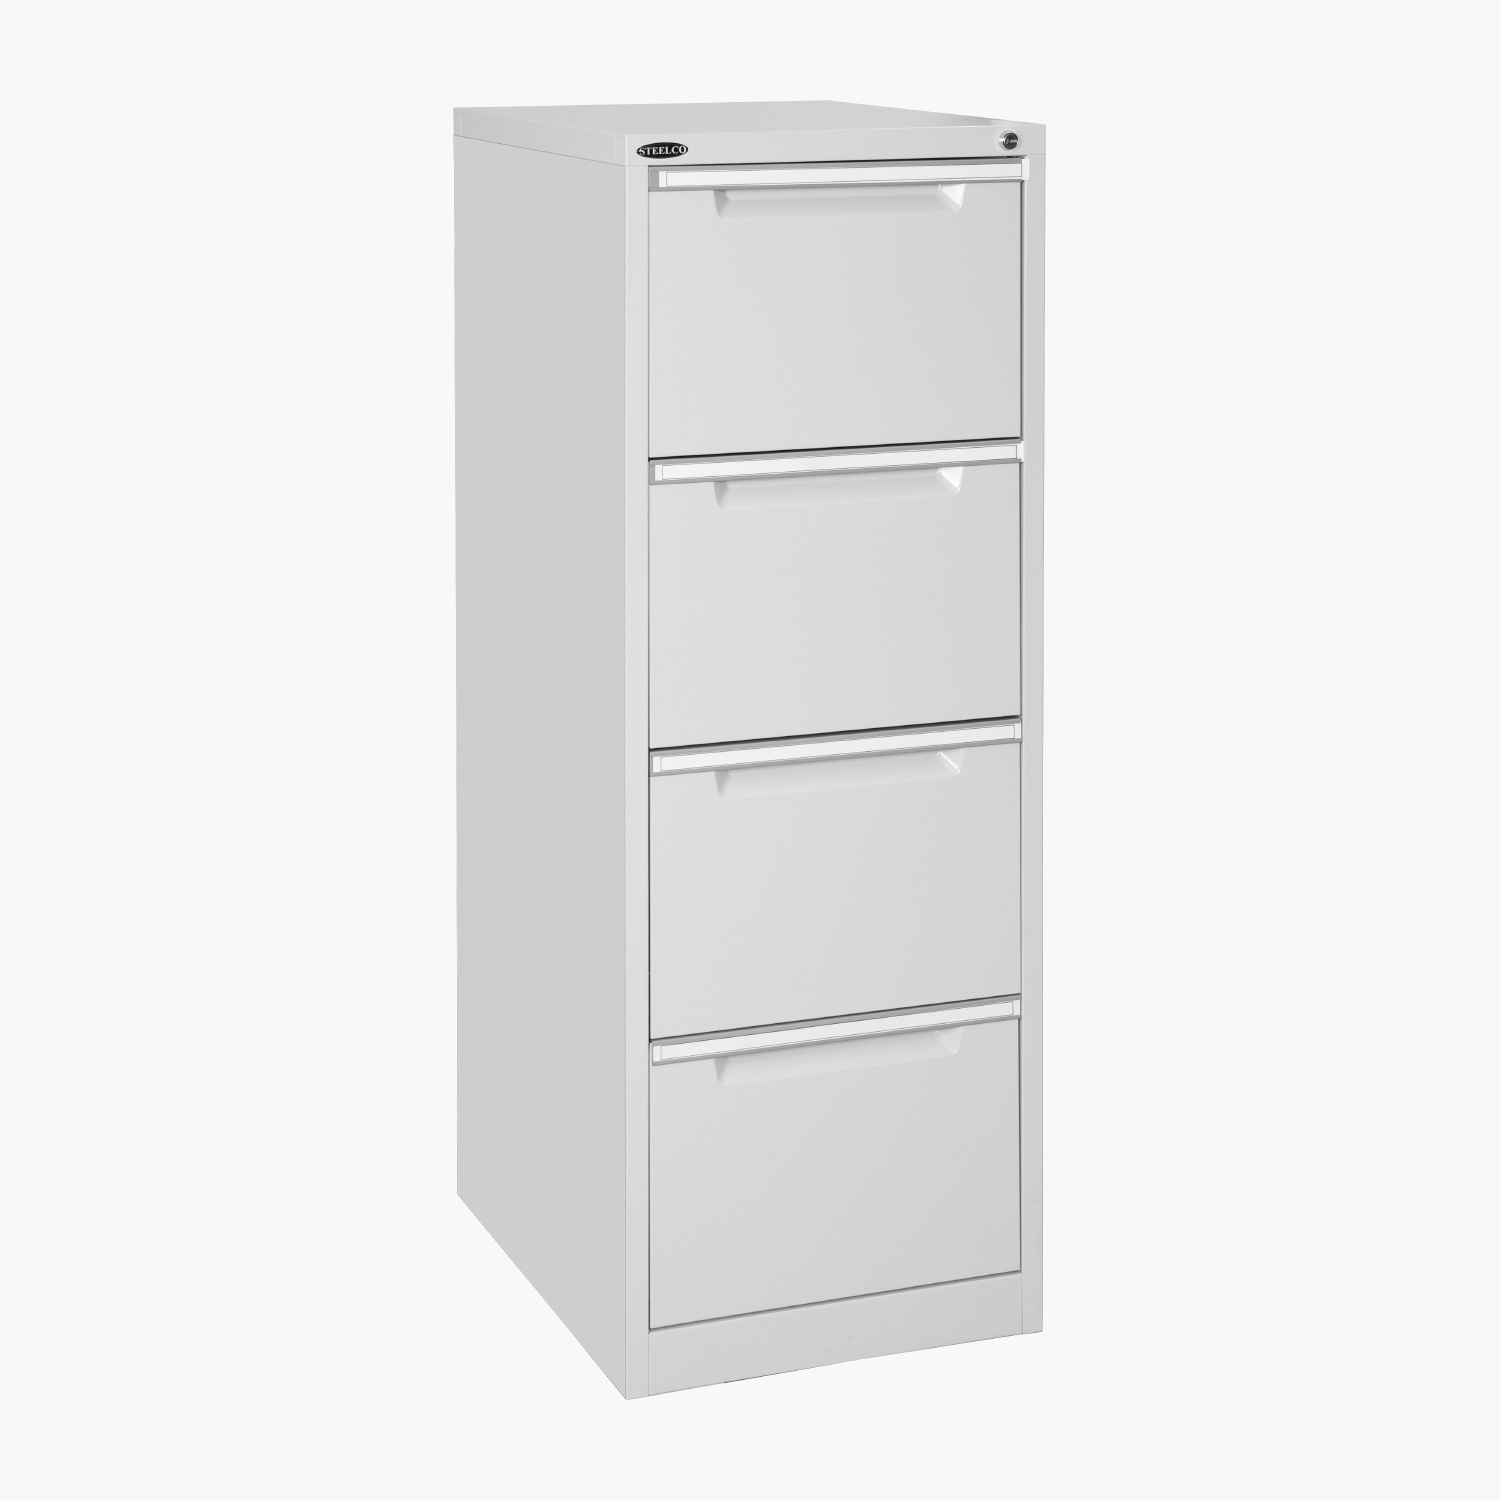 mm plastic cabinets soho new vertical drawer drawers cabinet divider w filing switzerland products